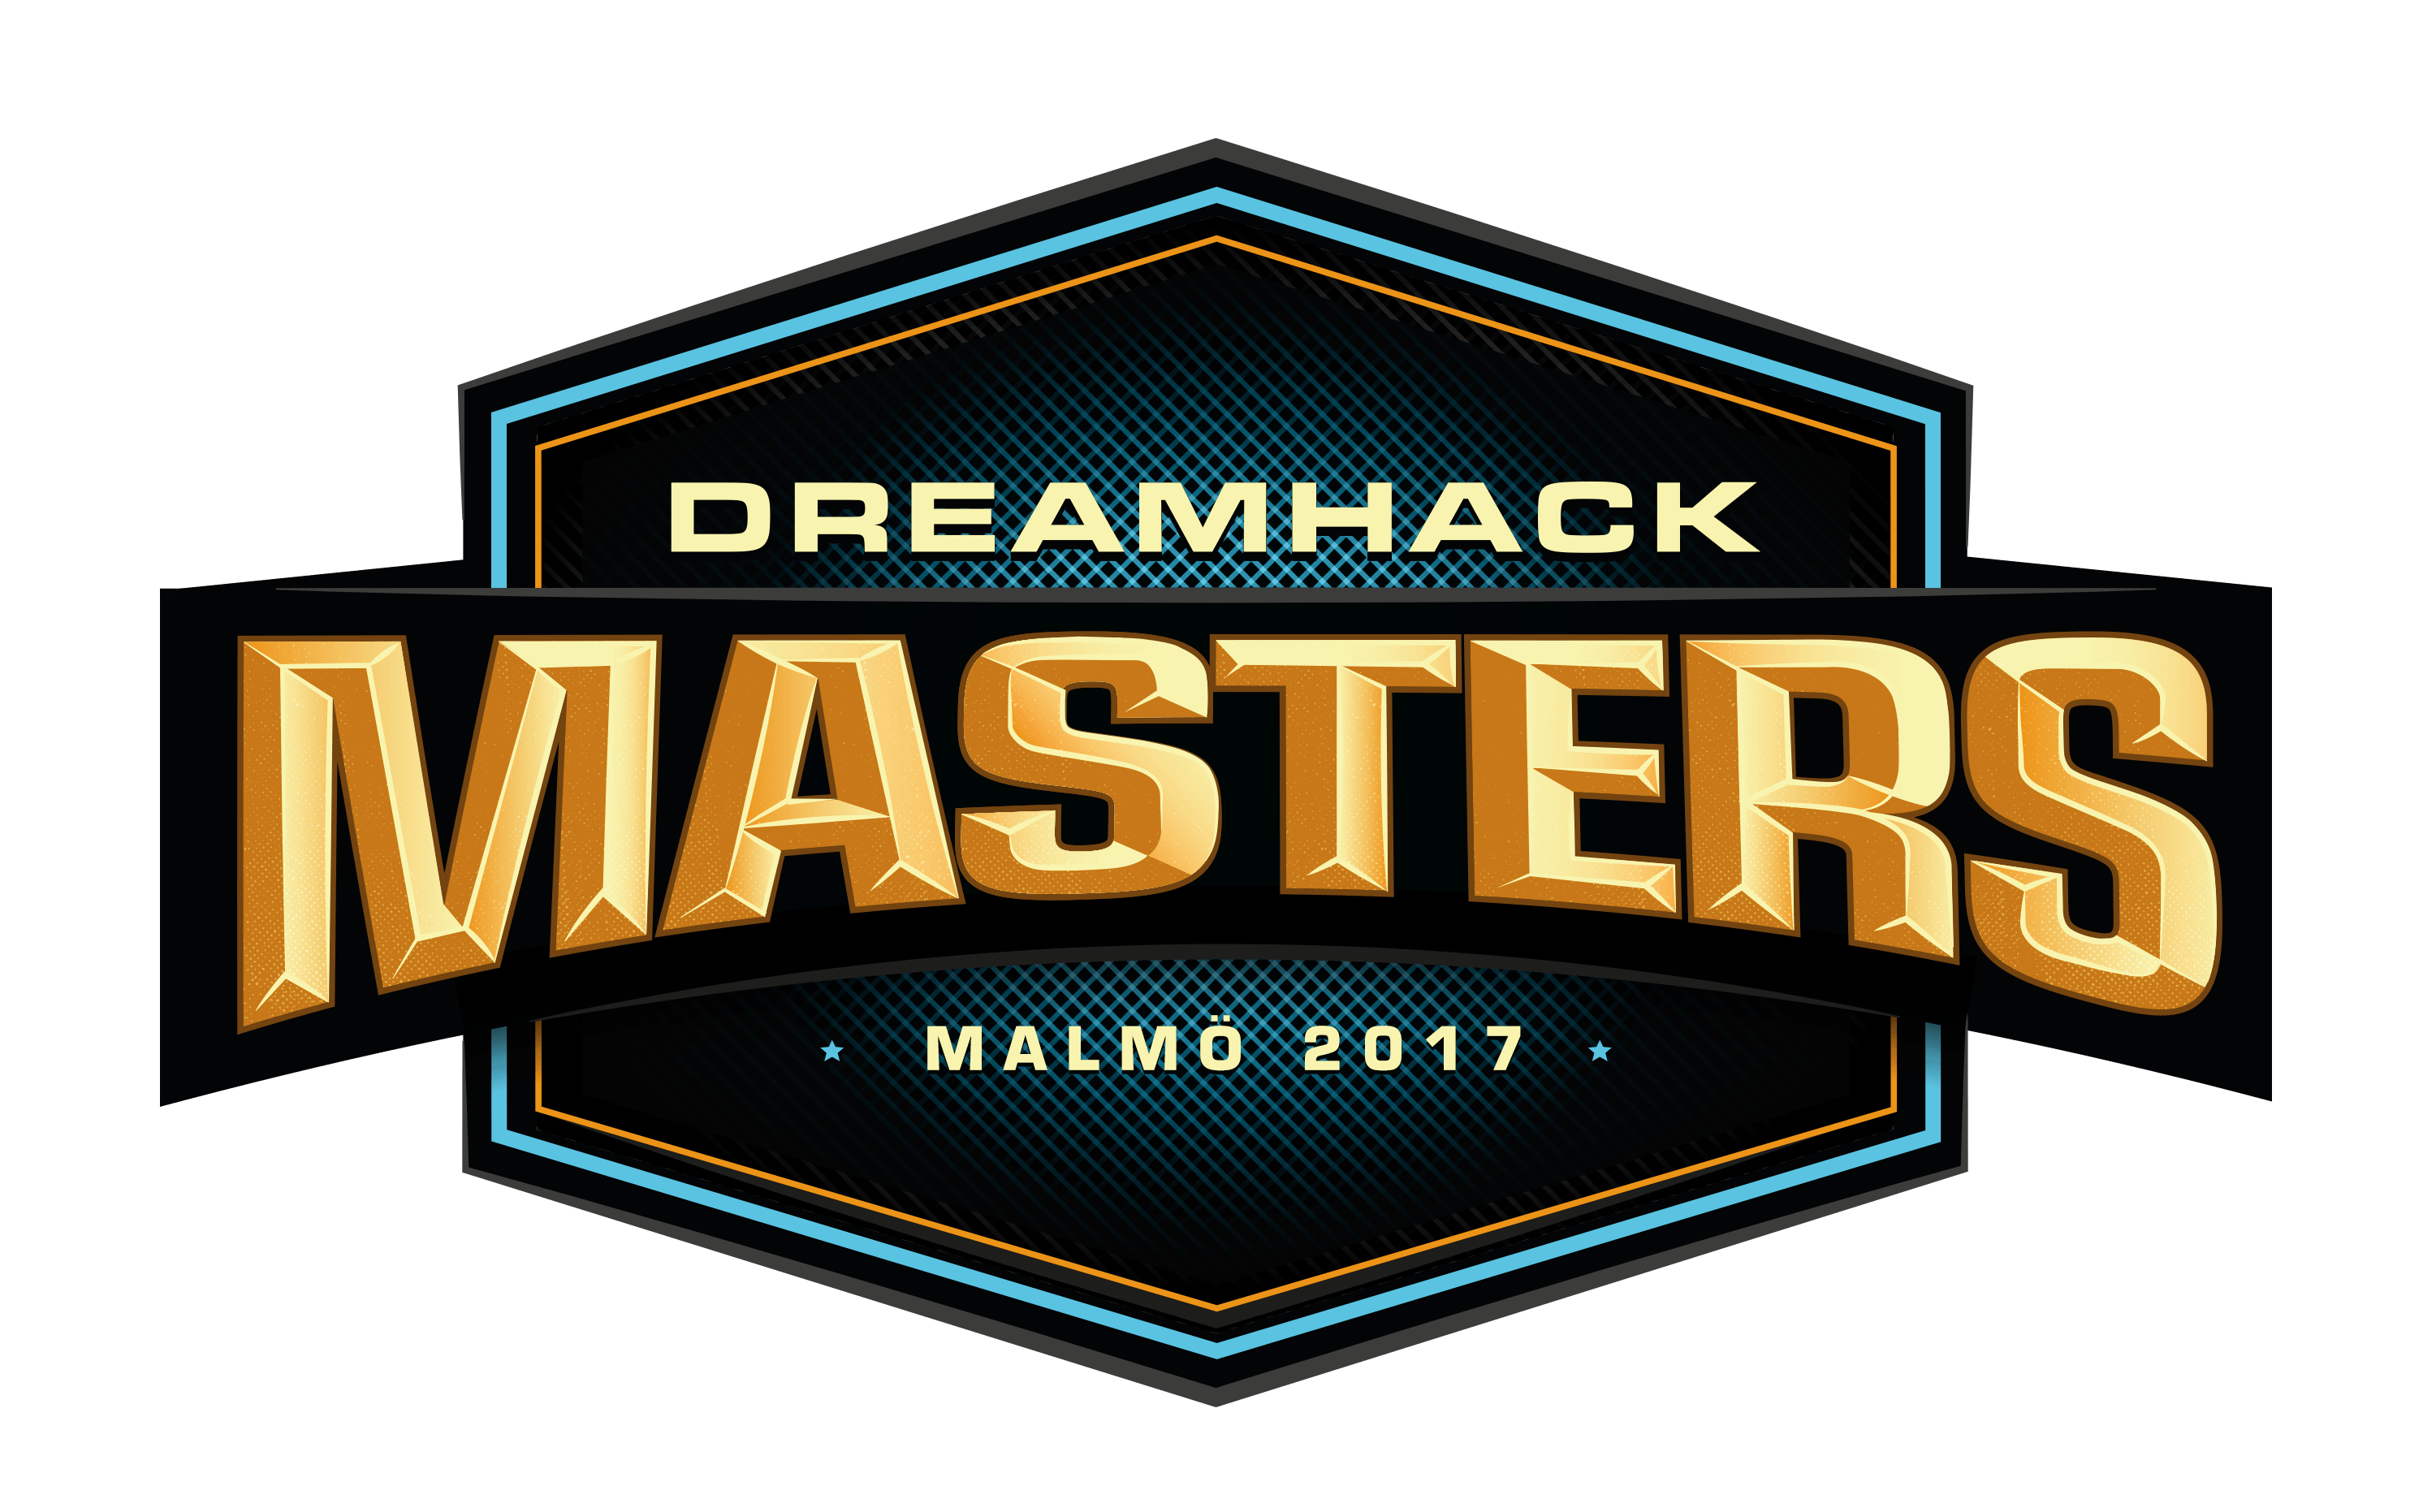 Semmler to miss out on Dreamhack Malmo 2017